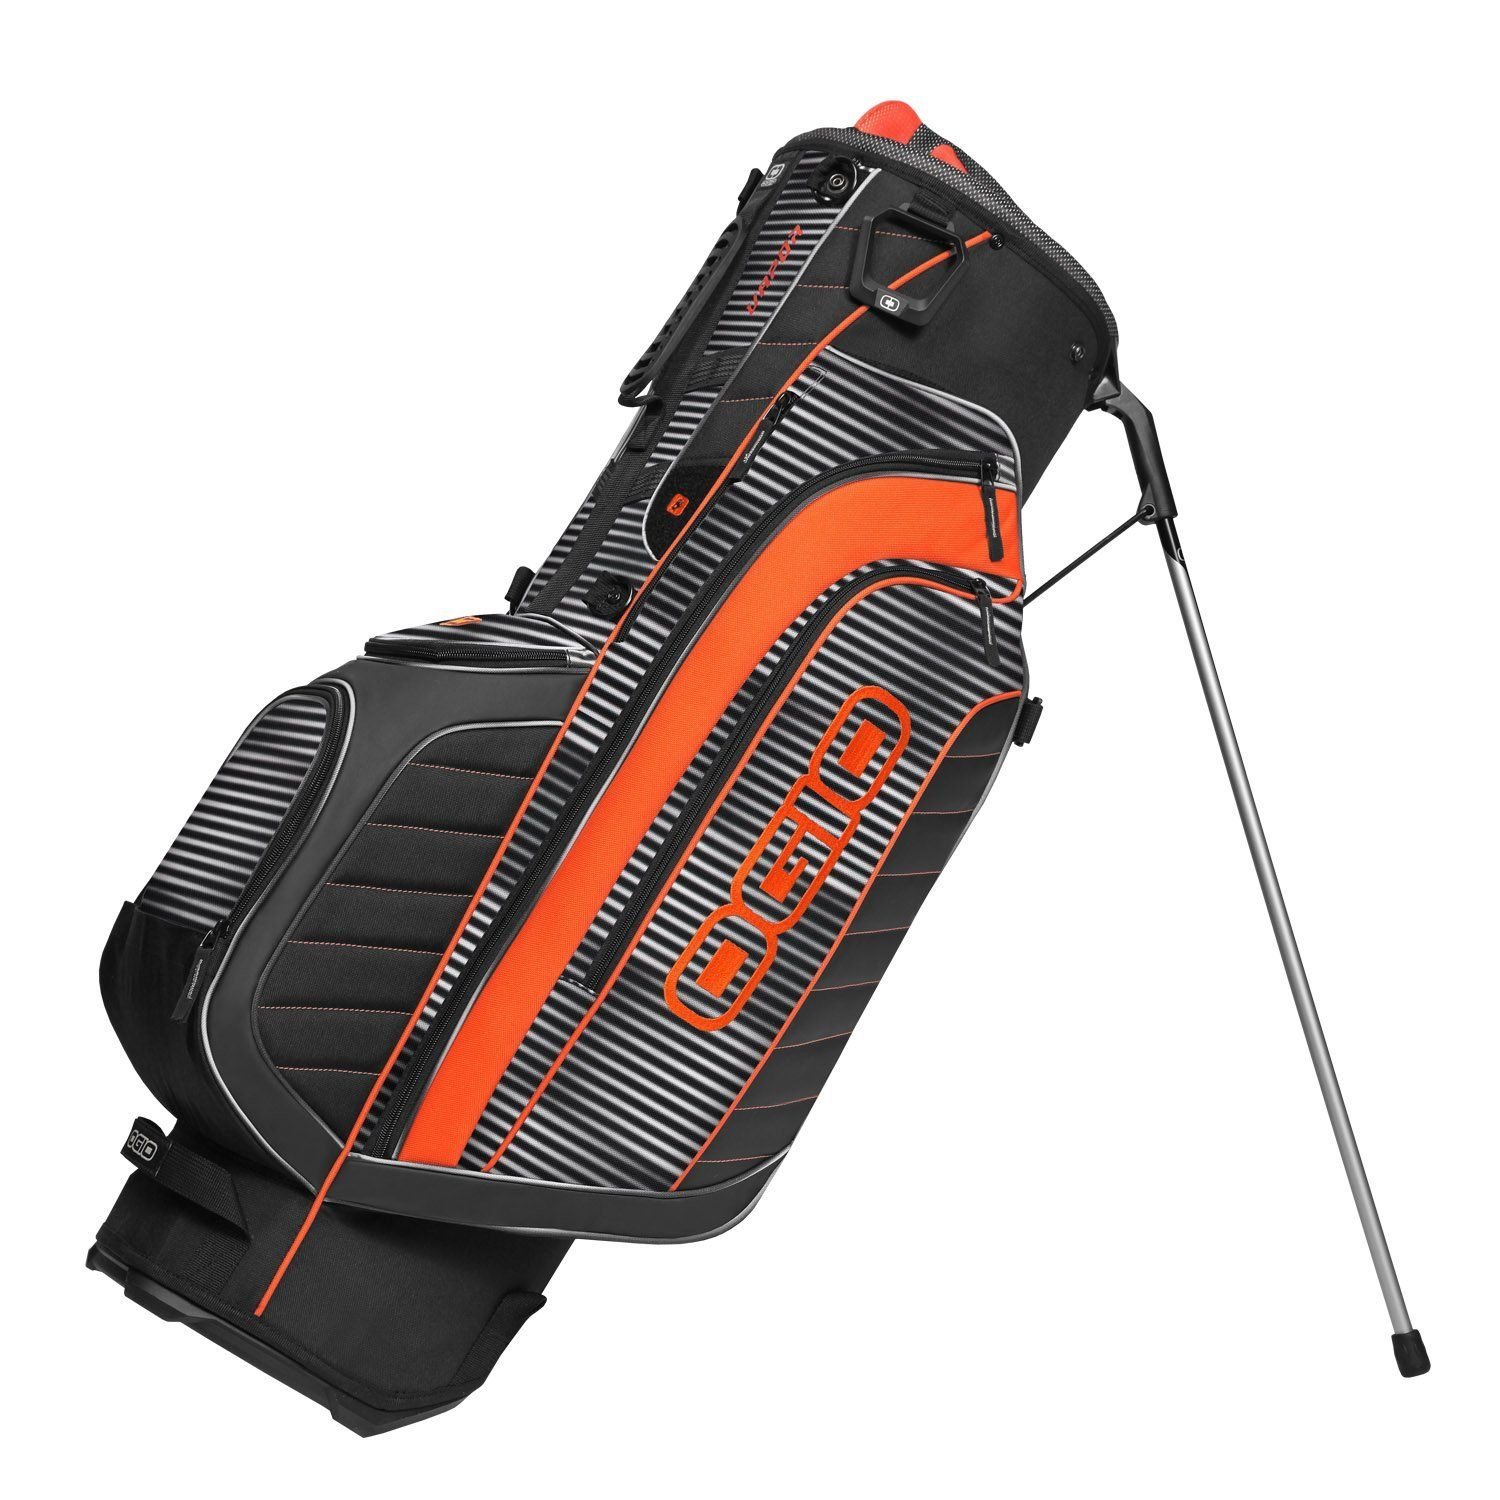 Offering Full Length Dividers These Mens Vapor Golf Club Stand Carry Bags By Ogio Also Feature A Walking Accessible Insulated Water Bottle Holster